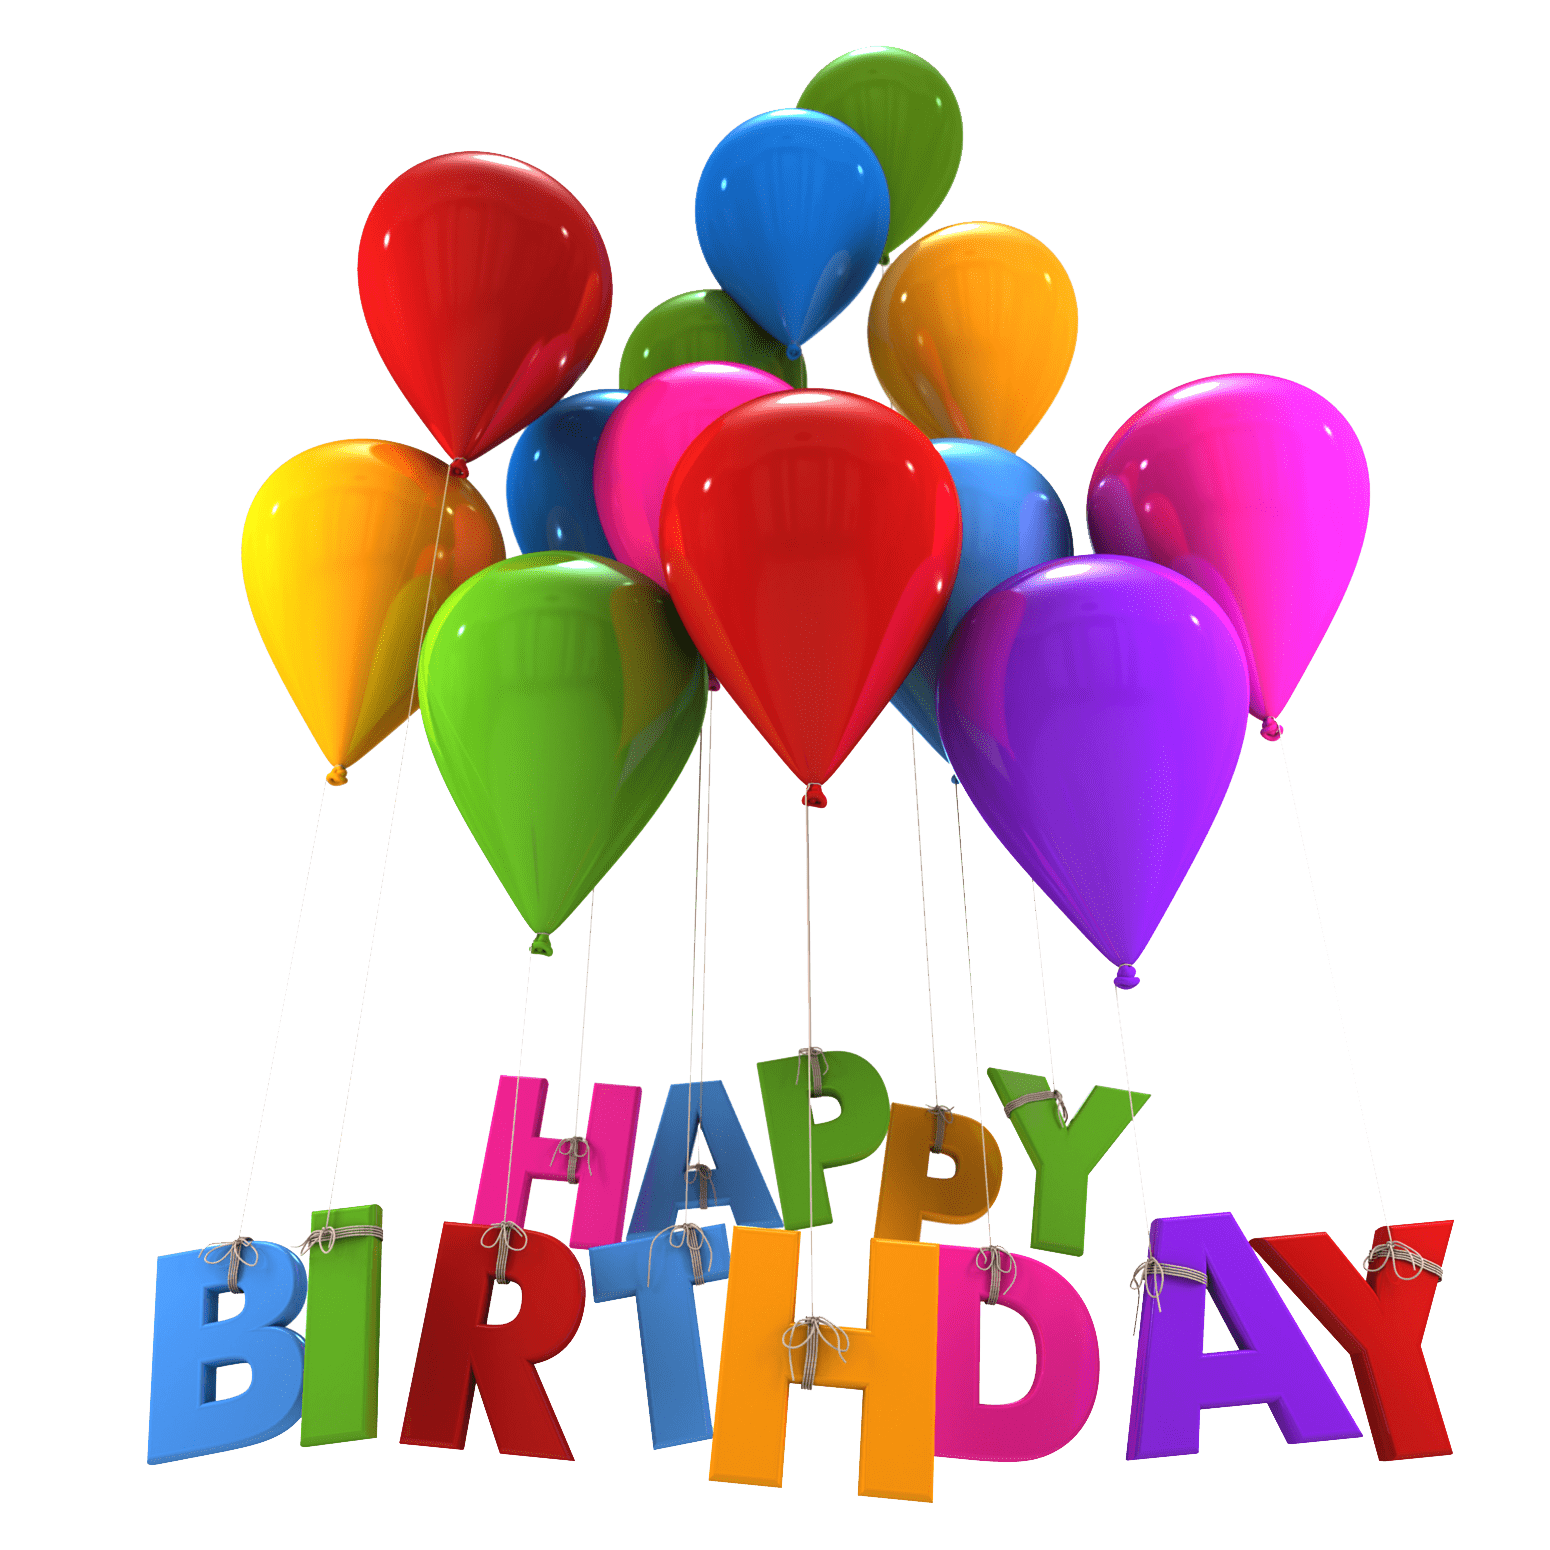 Balloons hanging letters transparent. Gift clipart happy birthday